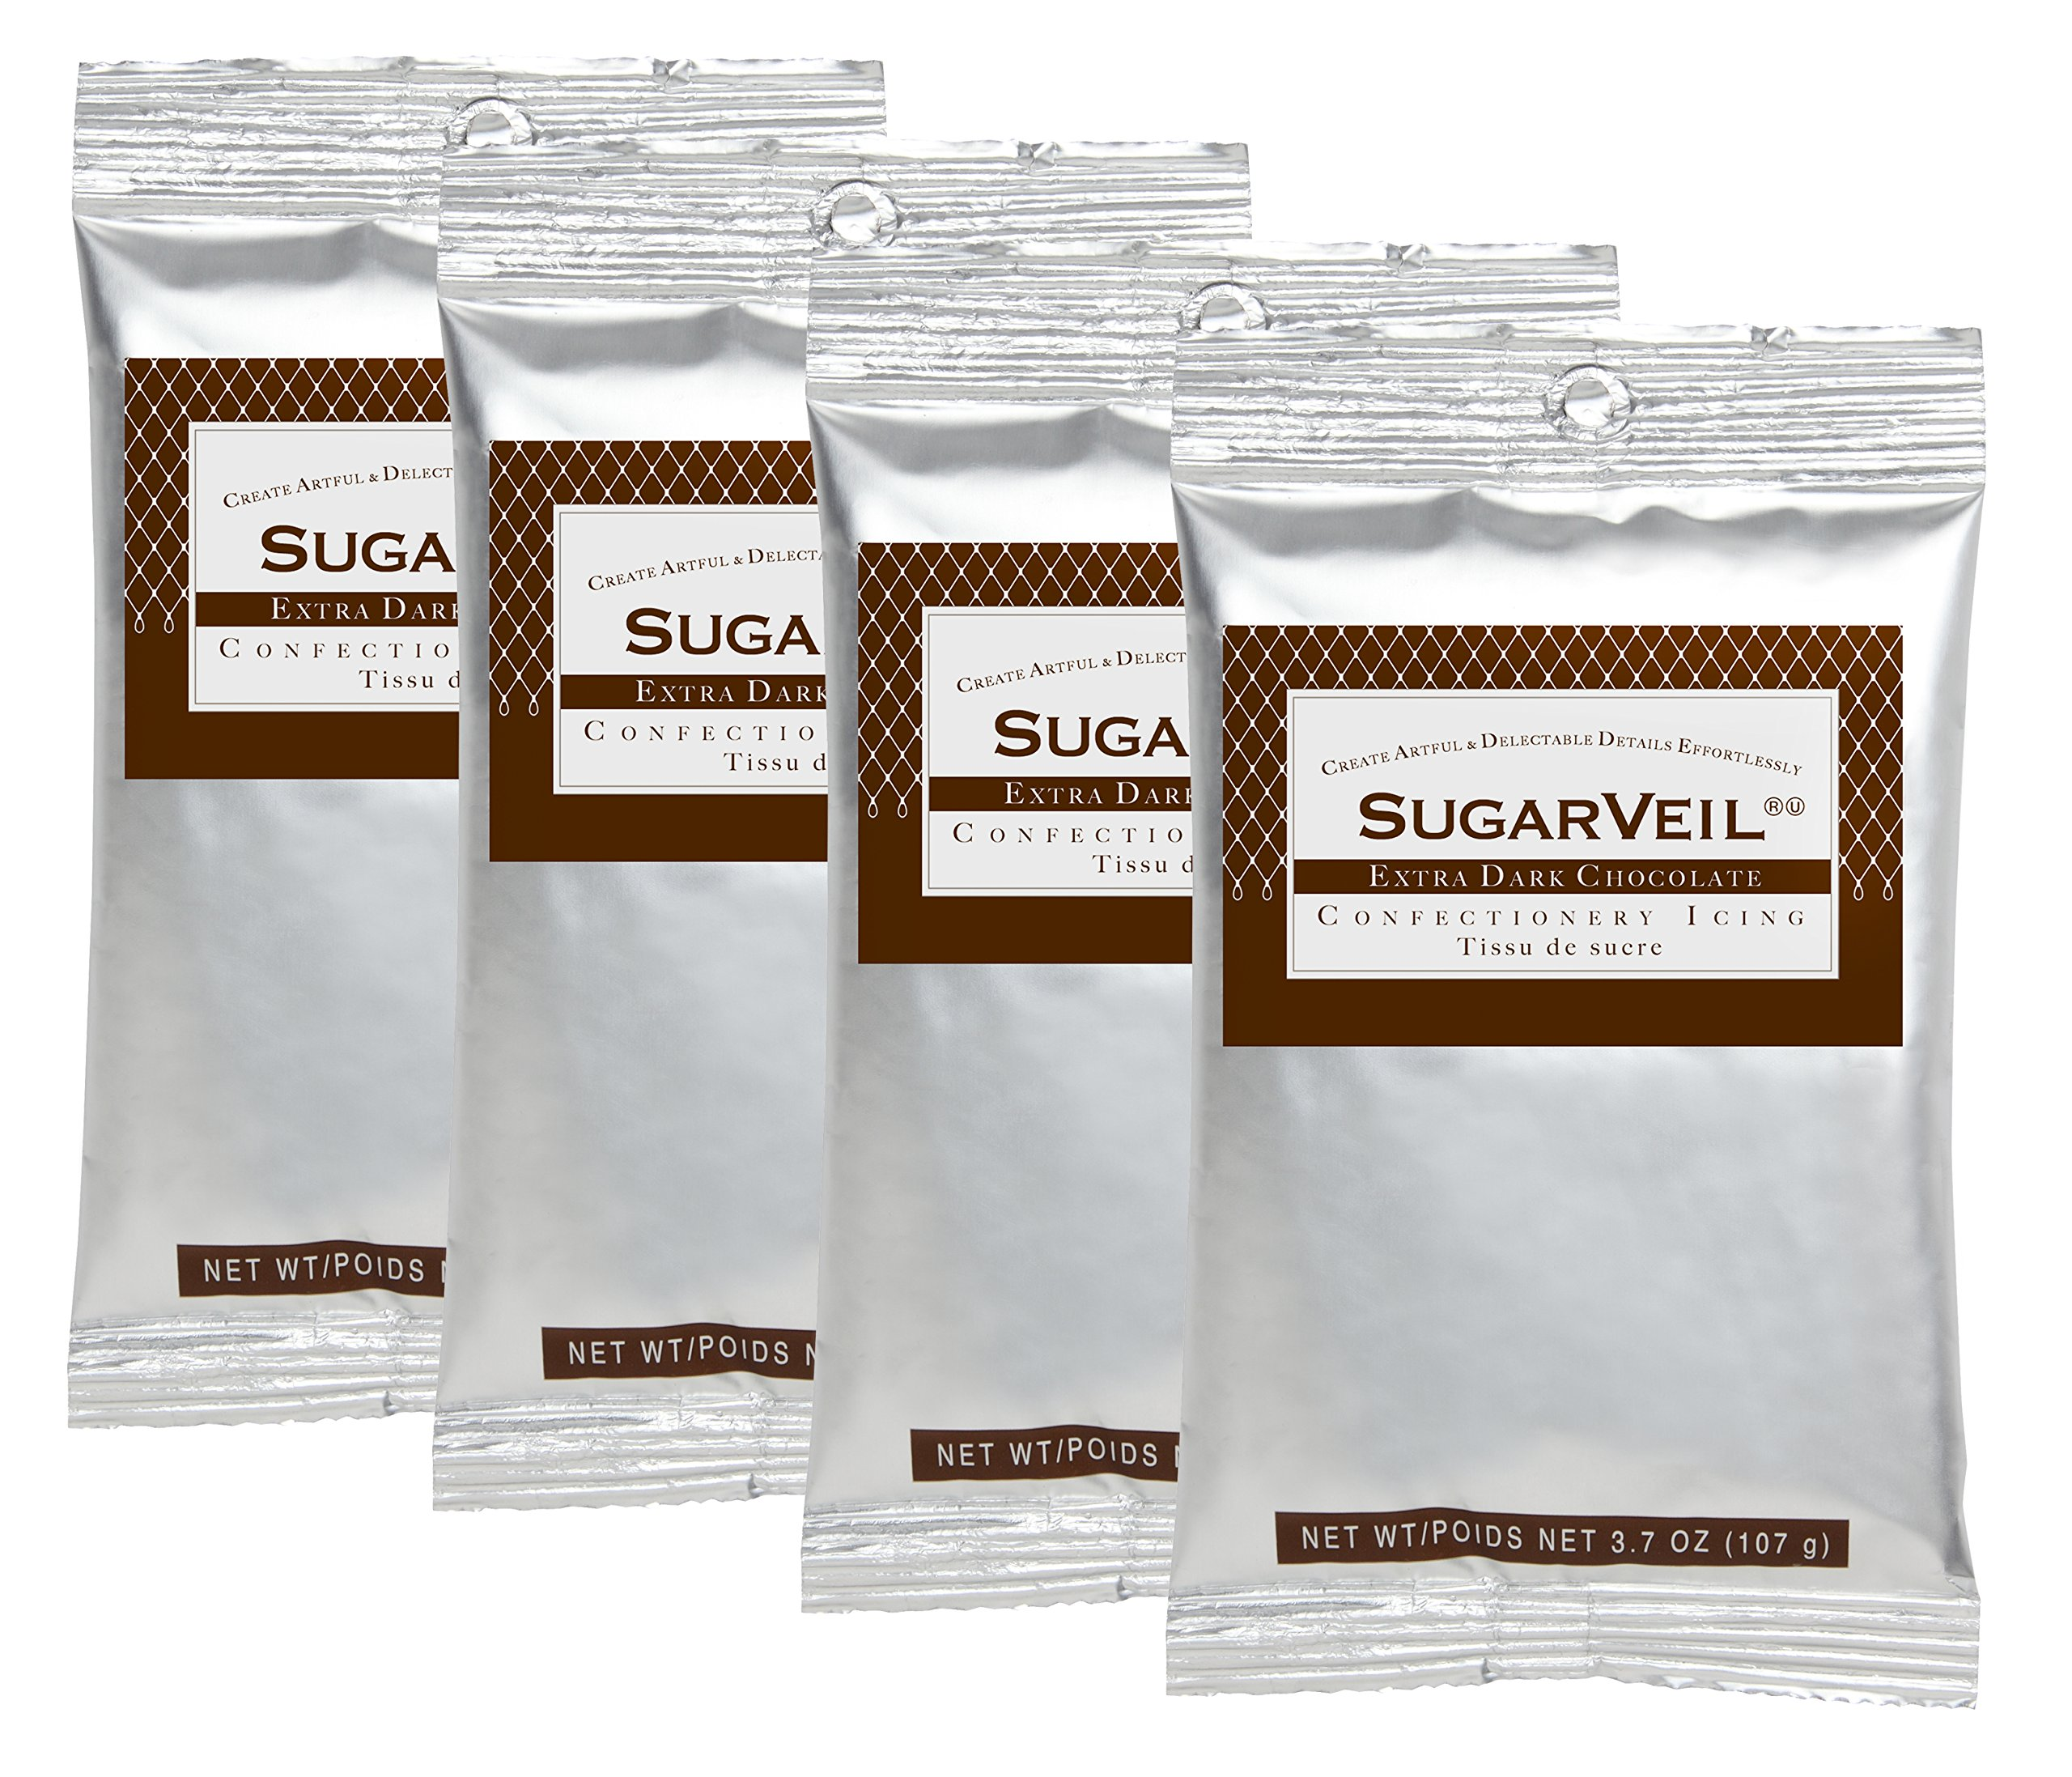 SugarVeil 4-pack of 3.7oz Extra Dark Chocolate Confectionery Icing